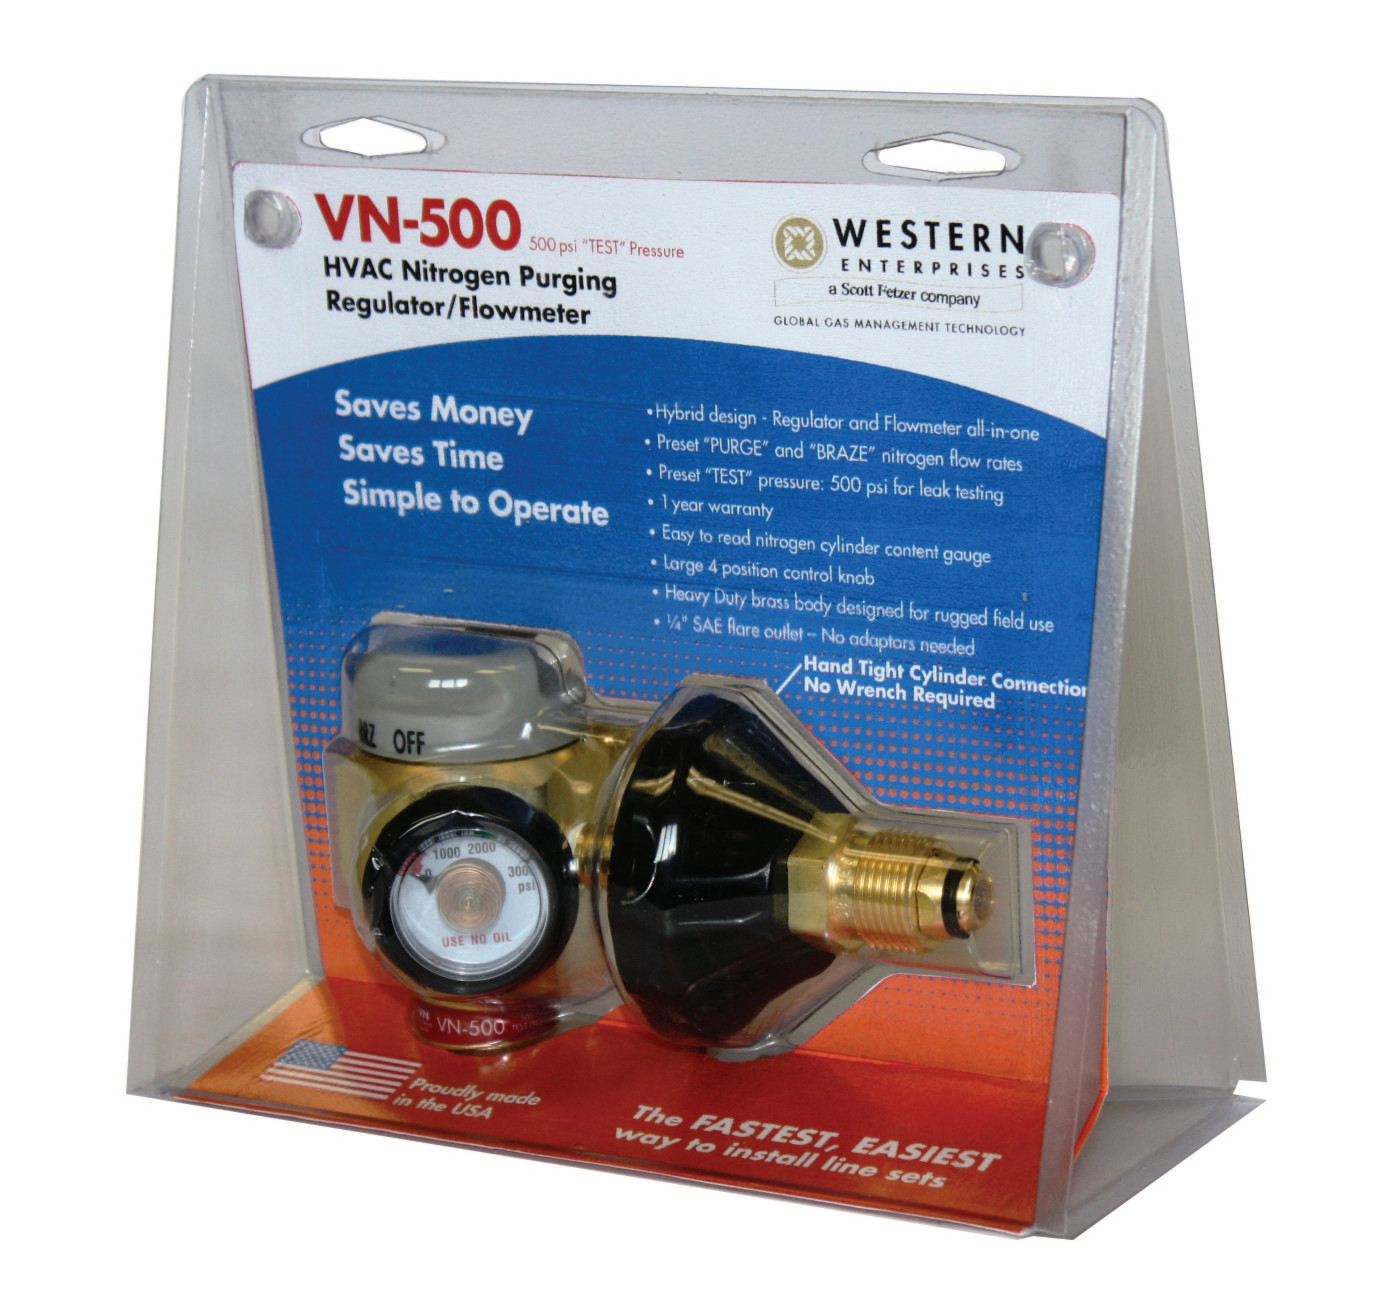 VN Series HVAC Nitrogen-Purging Regulators/Flowmeters, Nitrogen, 35 CFH, CGA-580